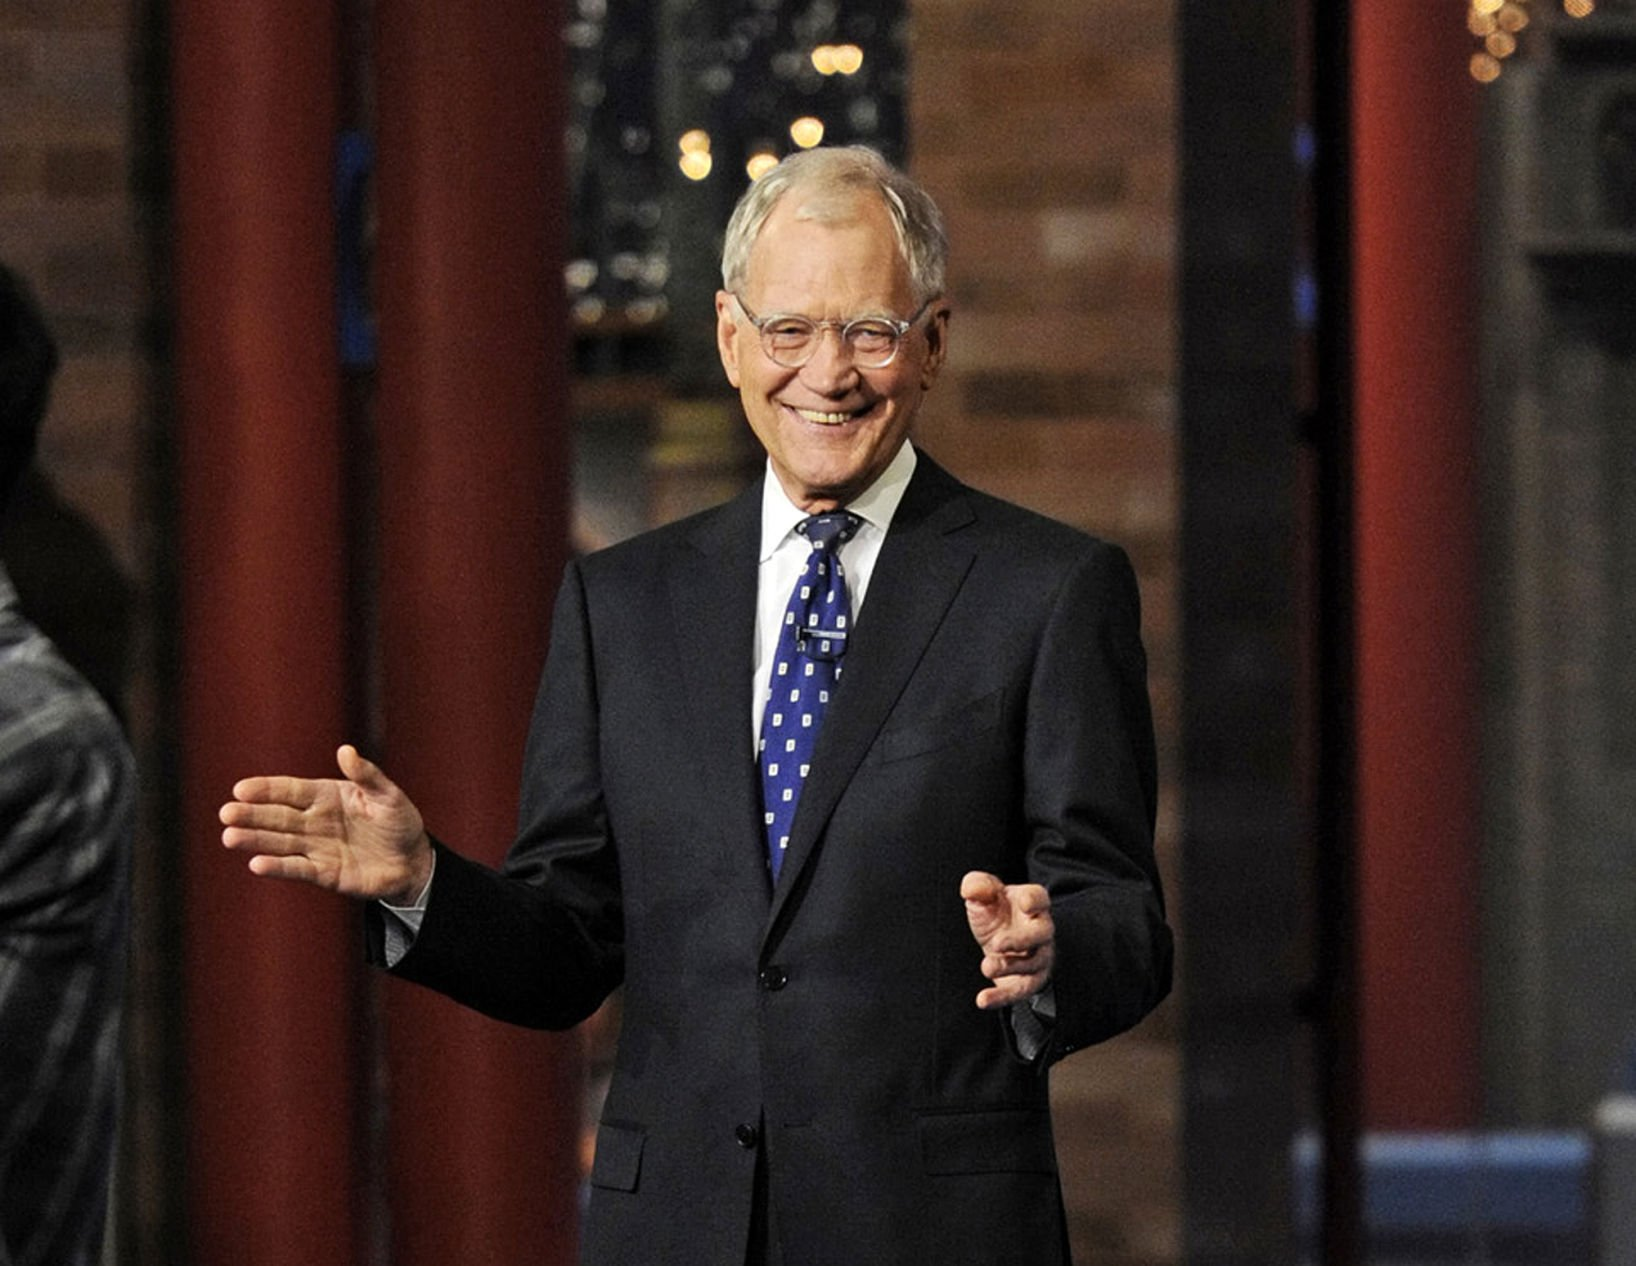 Letterman leaving retirement to host Netflix TV series